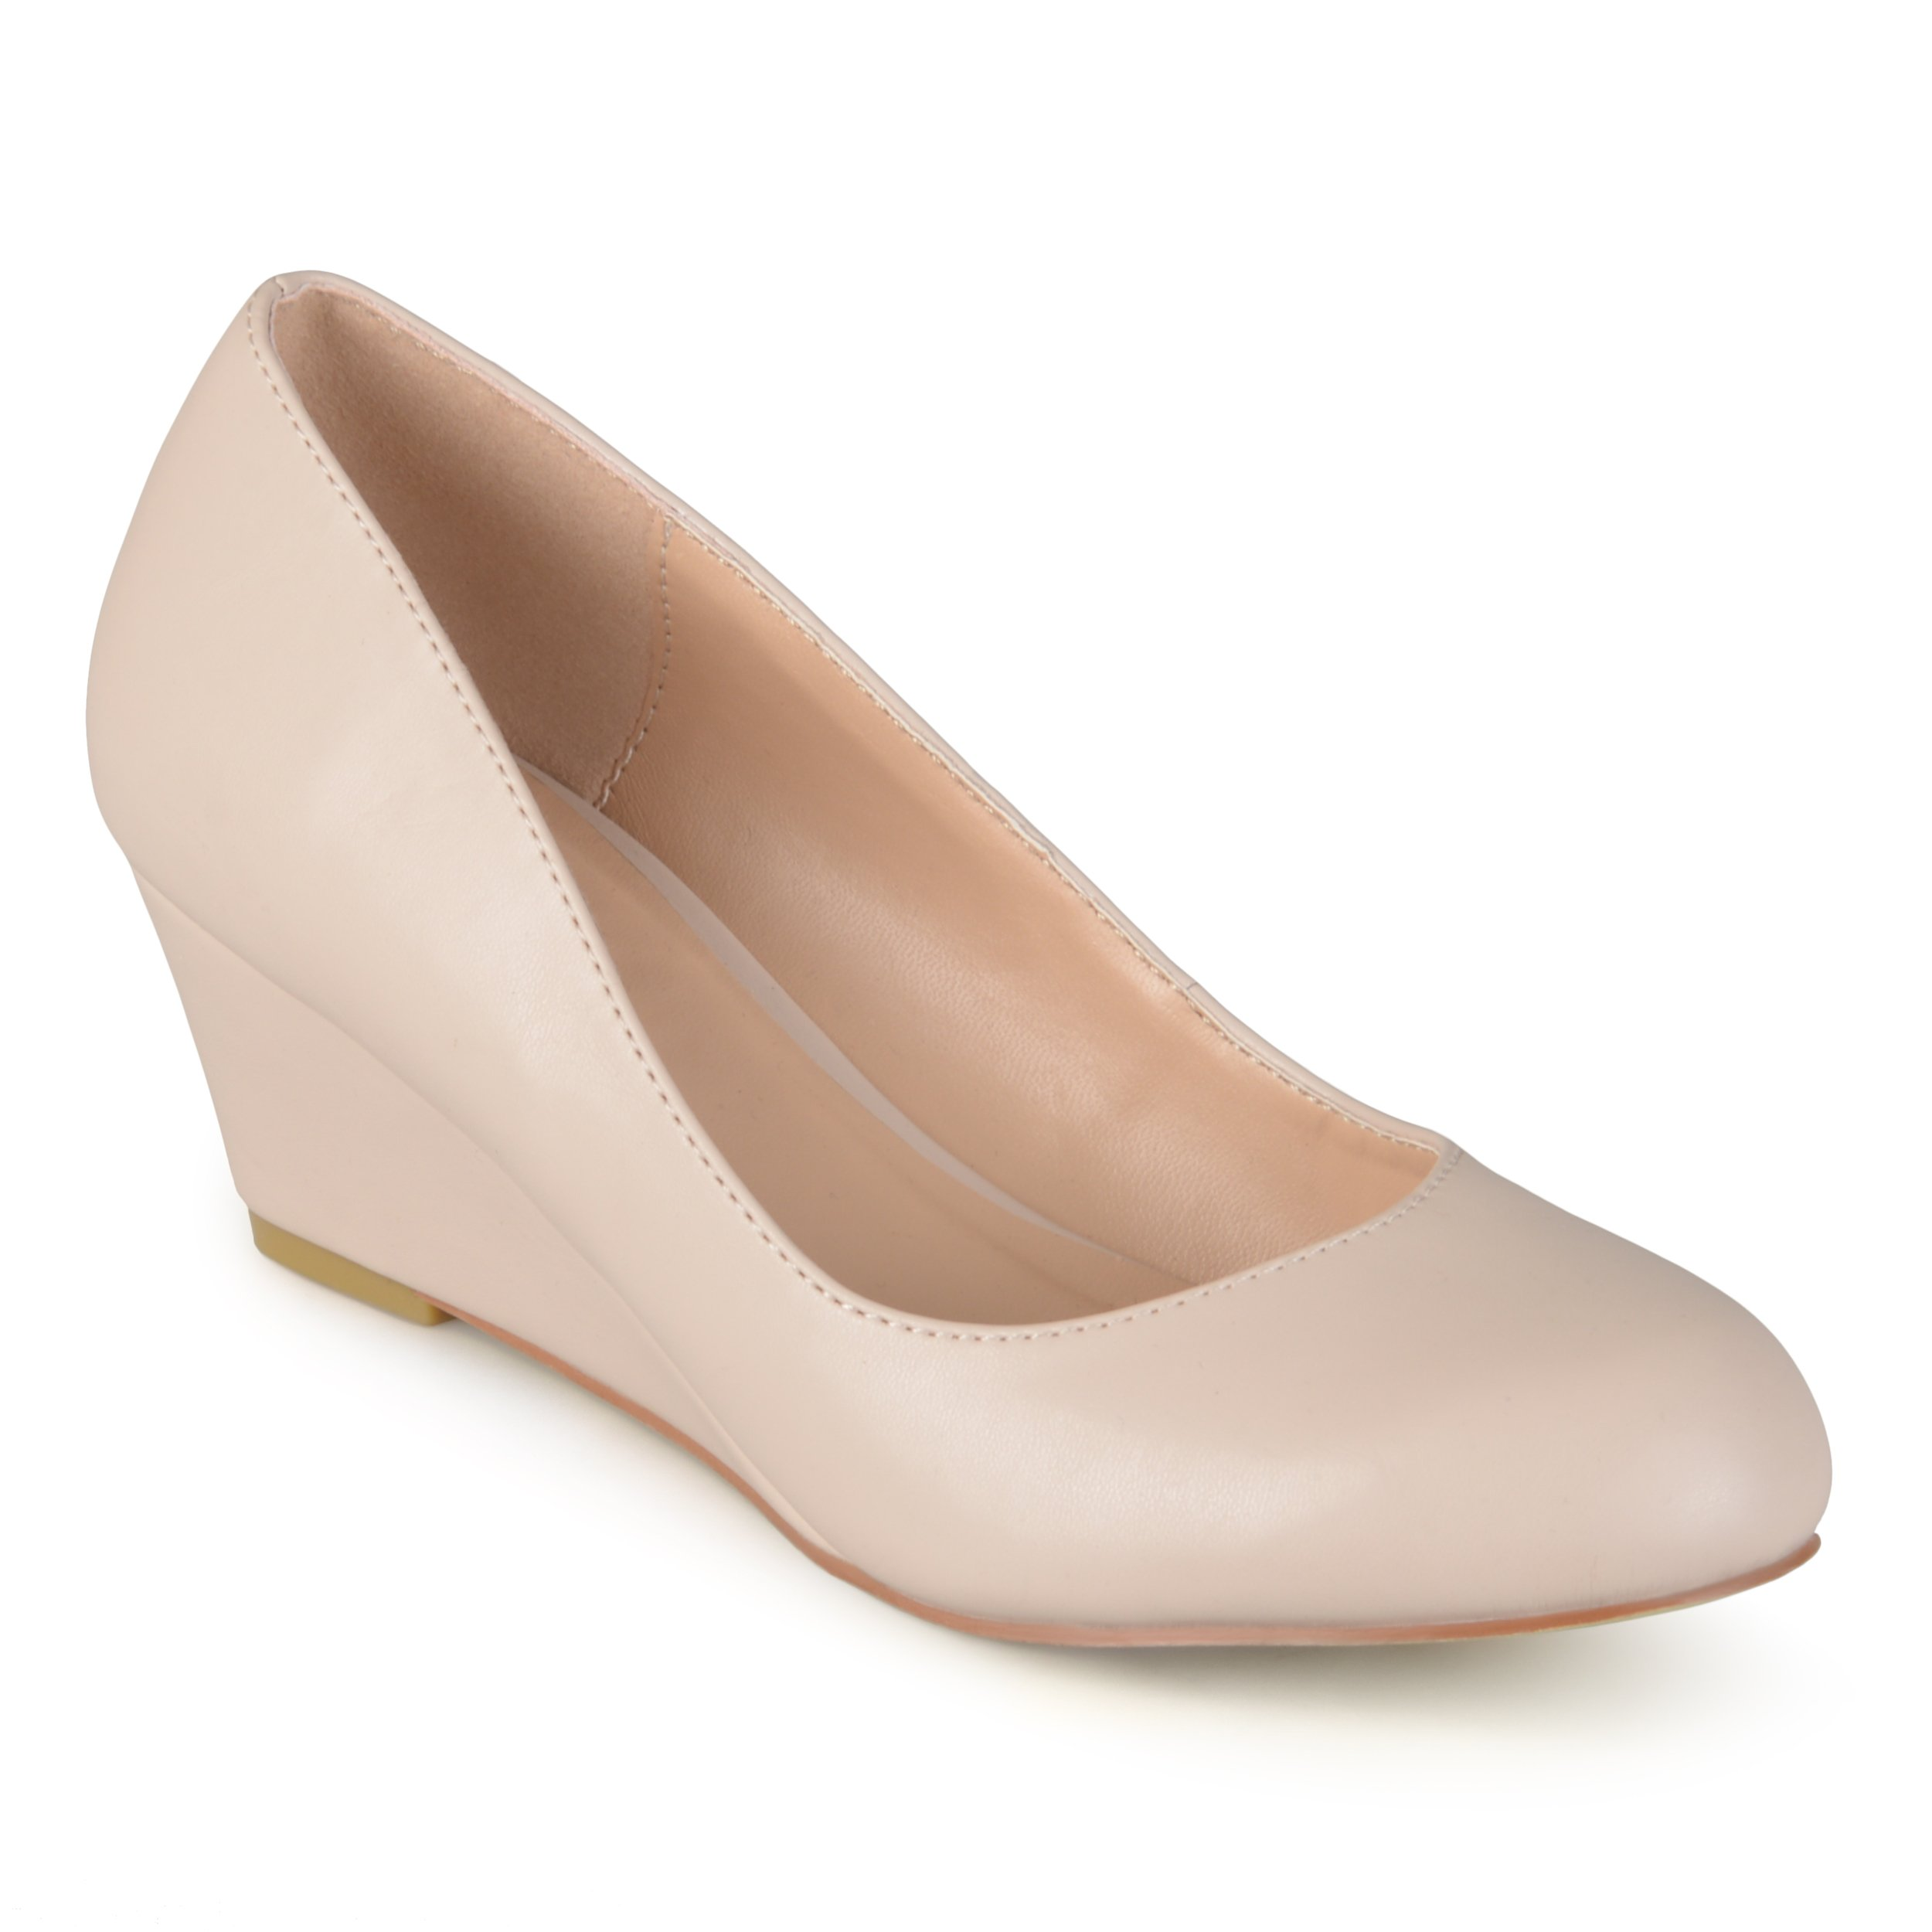 Journee Collection Women's Classic Round Toe Wedges Nude, 10 Wide Width US